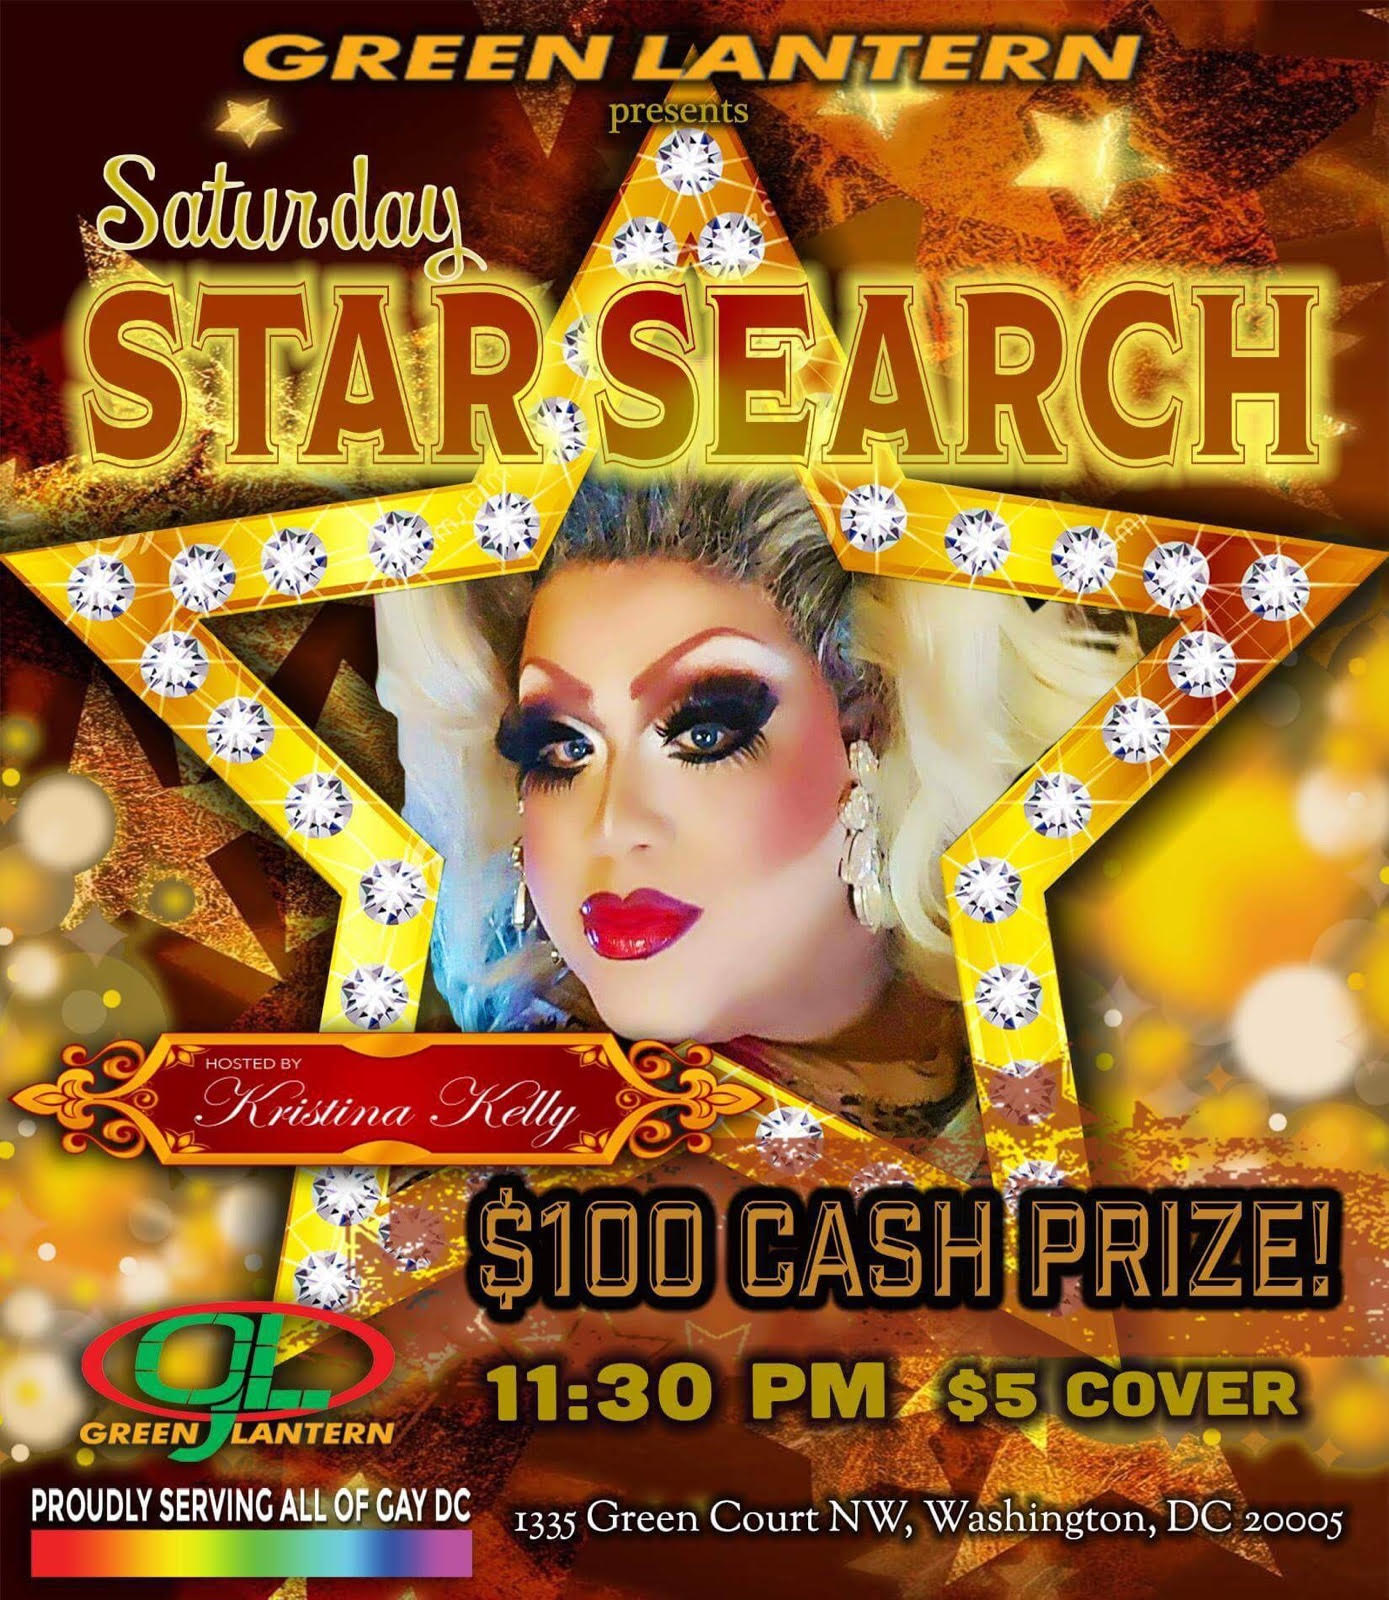 Saturday Star Search with Kristina Kelly